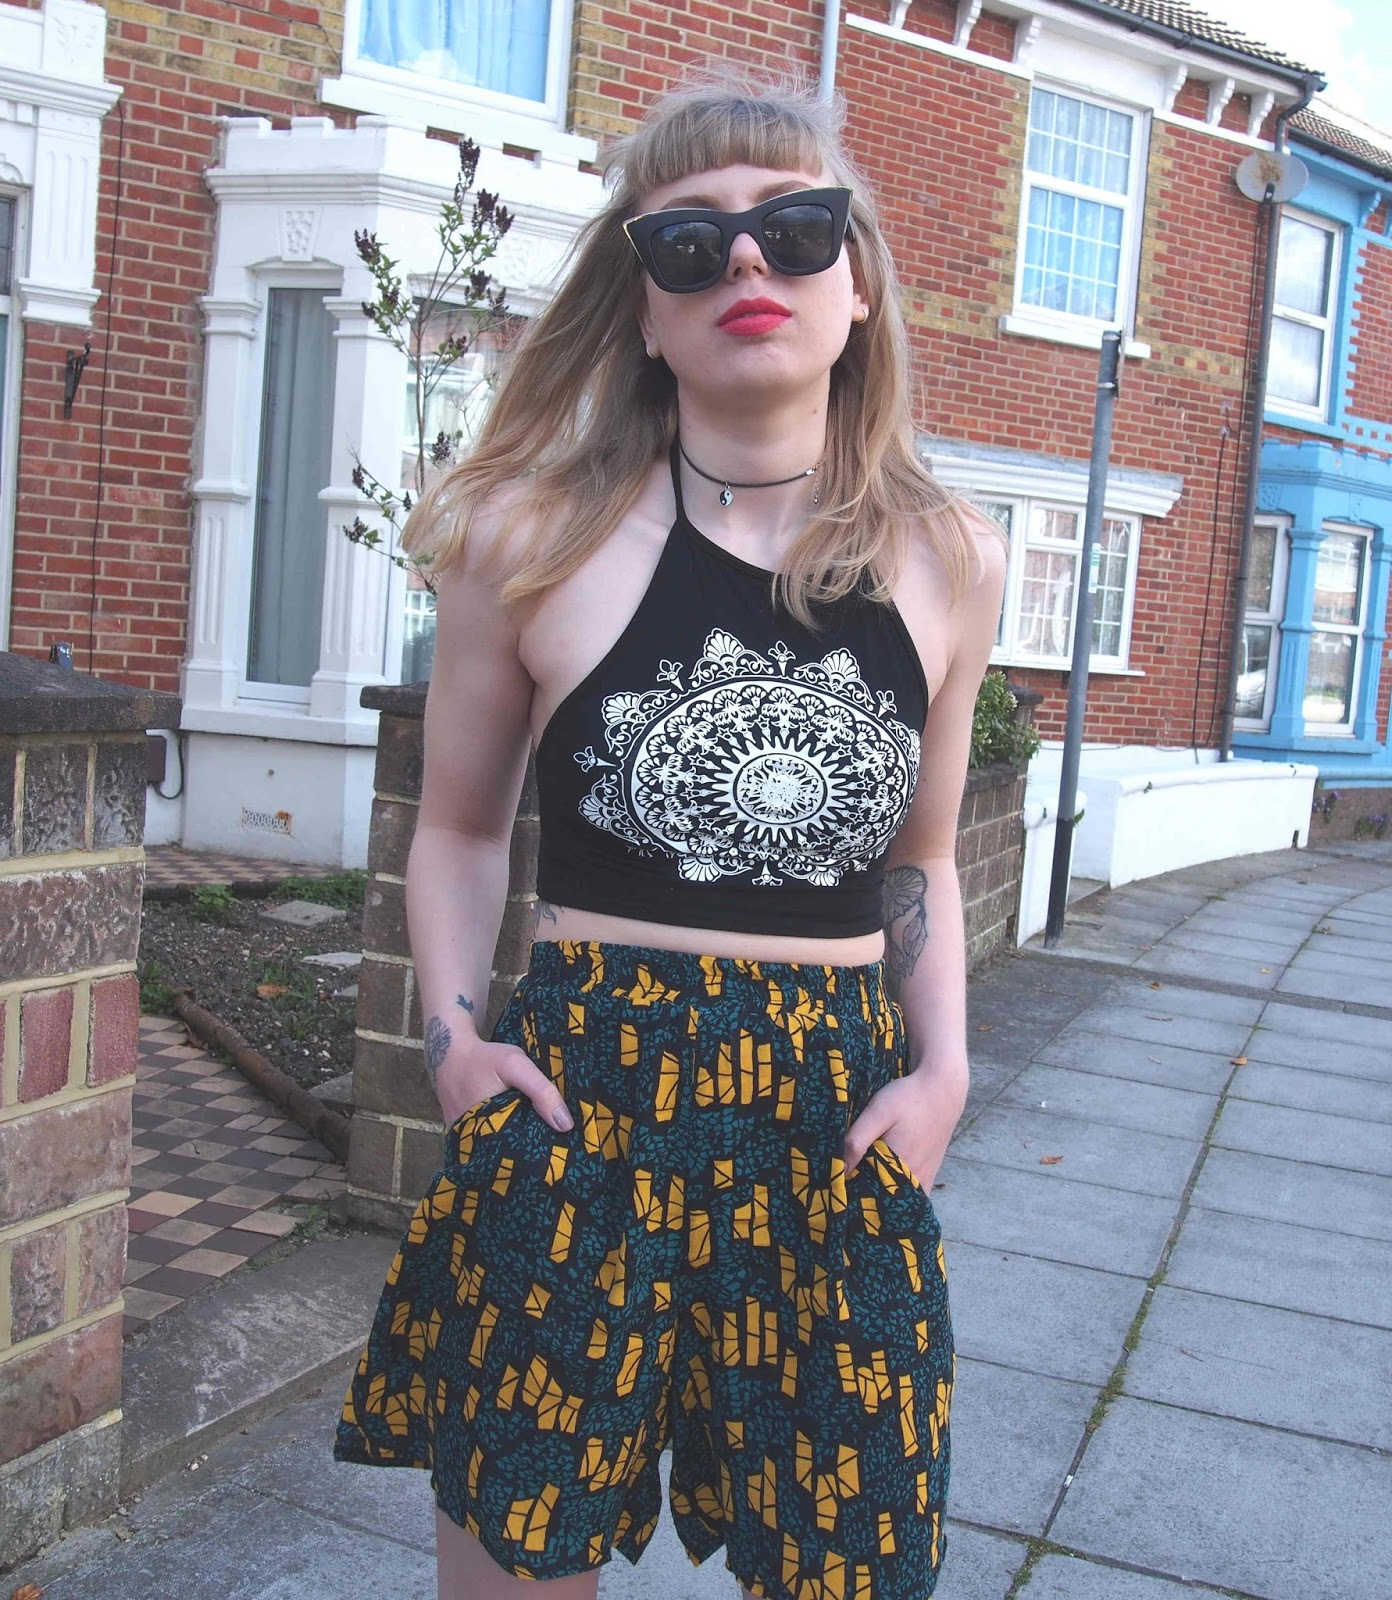 spring summer outfit inspiration, clashing prints, culottes, mandala halter neck top, nike air force 1, alternative style inspiration, 90s style fashion, quay sunglasses